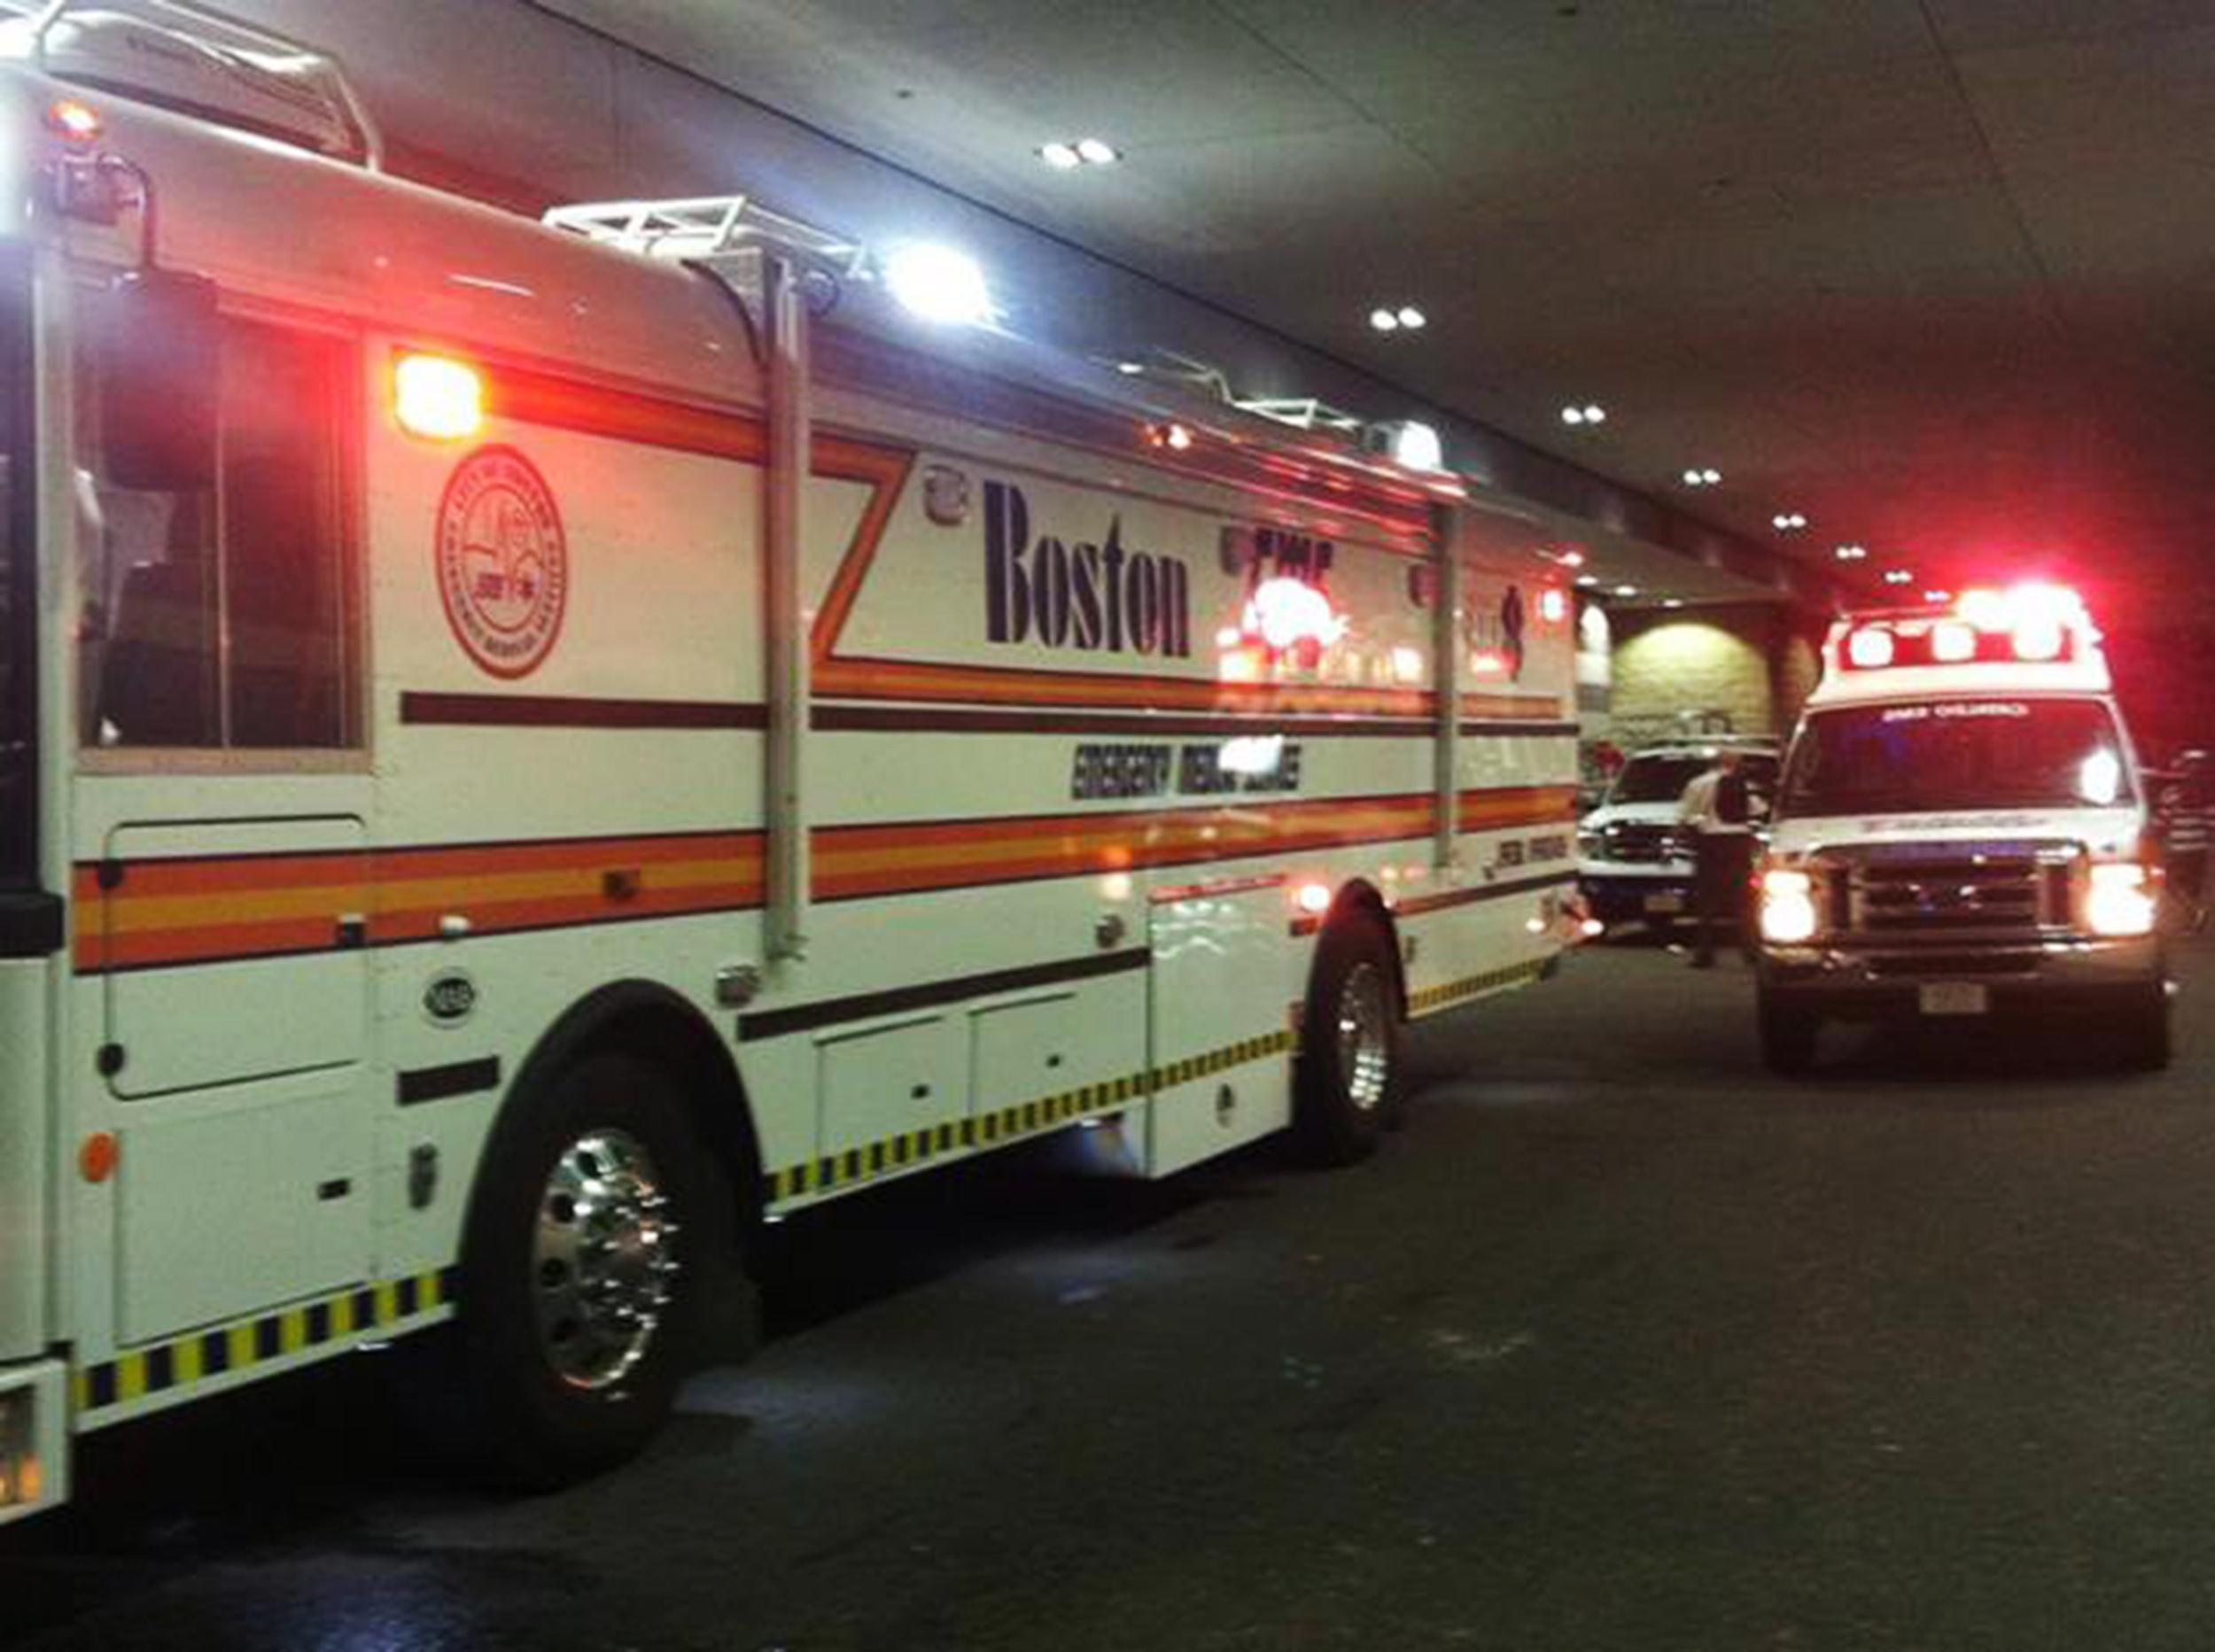 Image: Medical personell responded to incidents at Boston's TD Garden during an Avicii concert